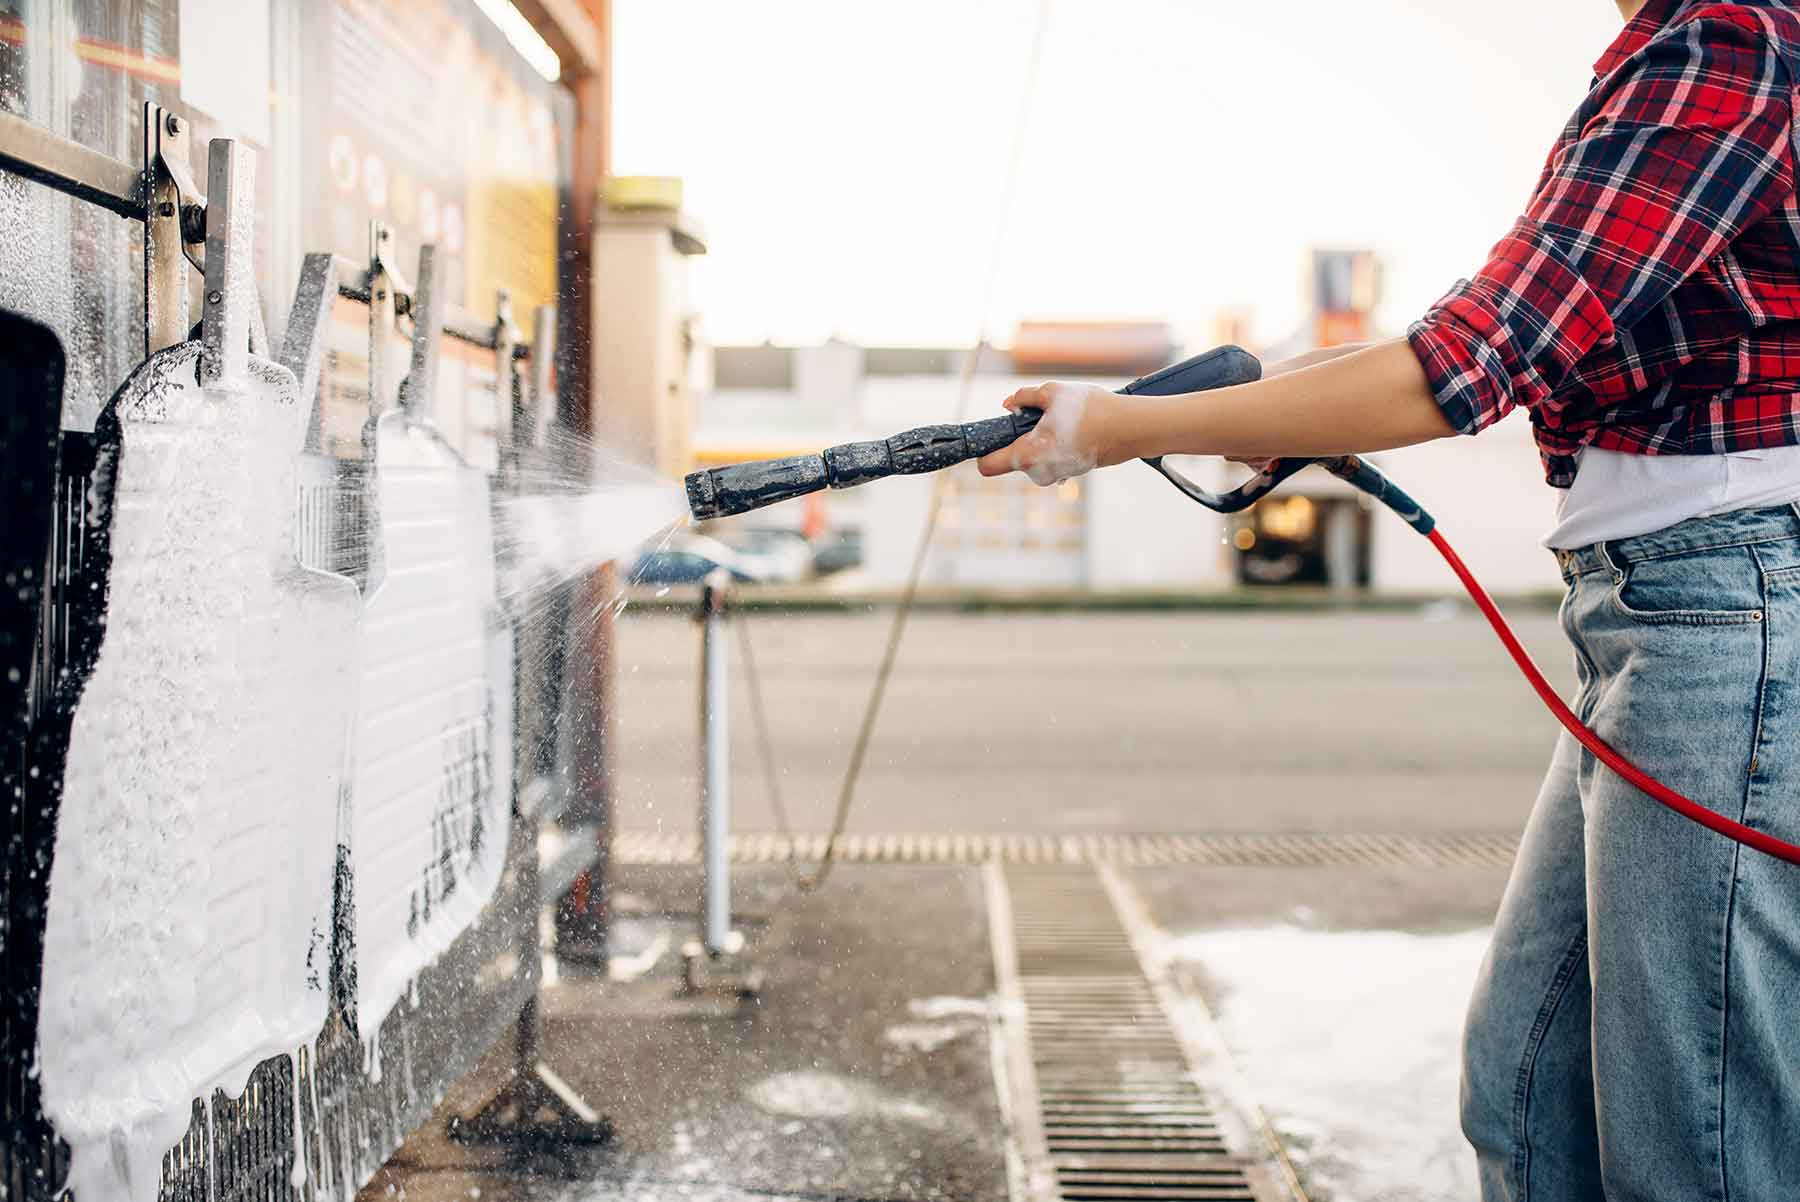 female-person-with-water-gun-cleans-car-mats-URZJMKF